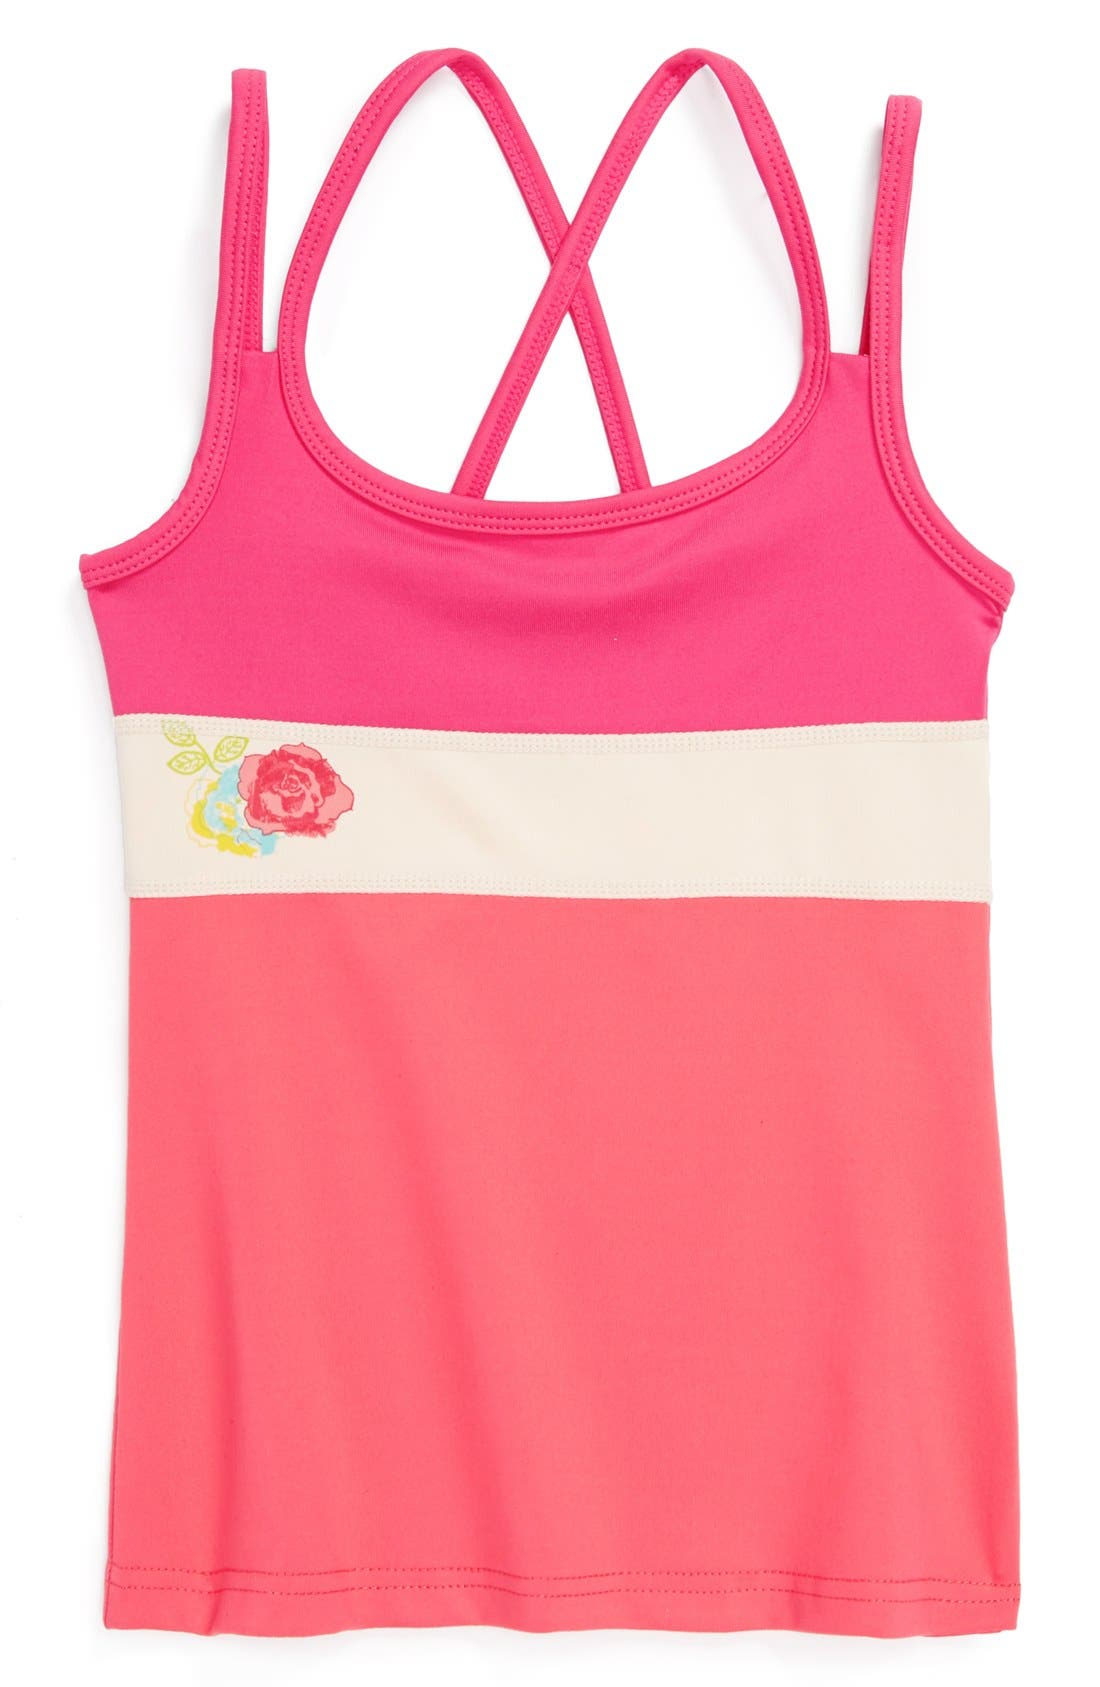 Main Image - Limeapple Cross Back Tank Top (Little Girls & Big Girls)